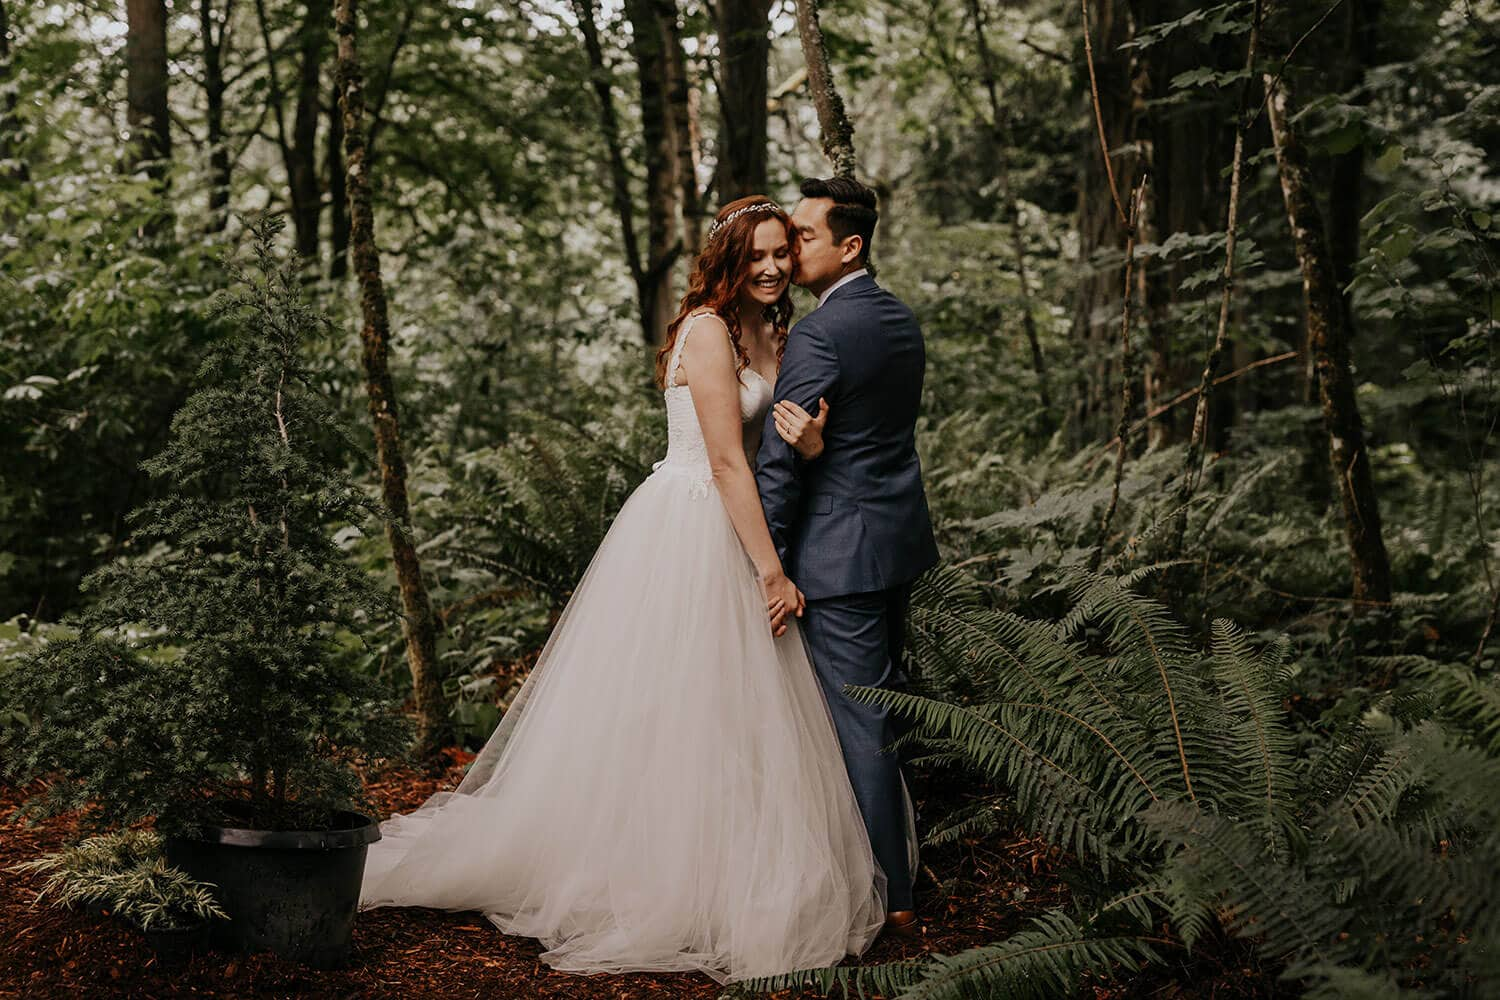 Lovely bride and groom standing in a beautiful wedding gowns in a lush forest in Seattle